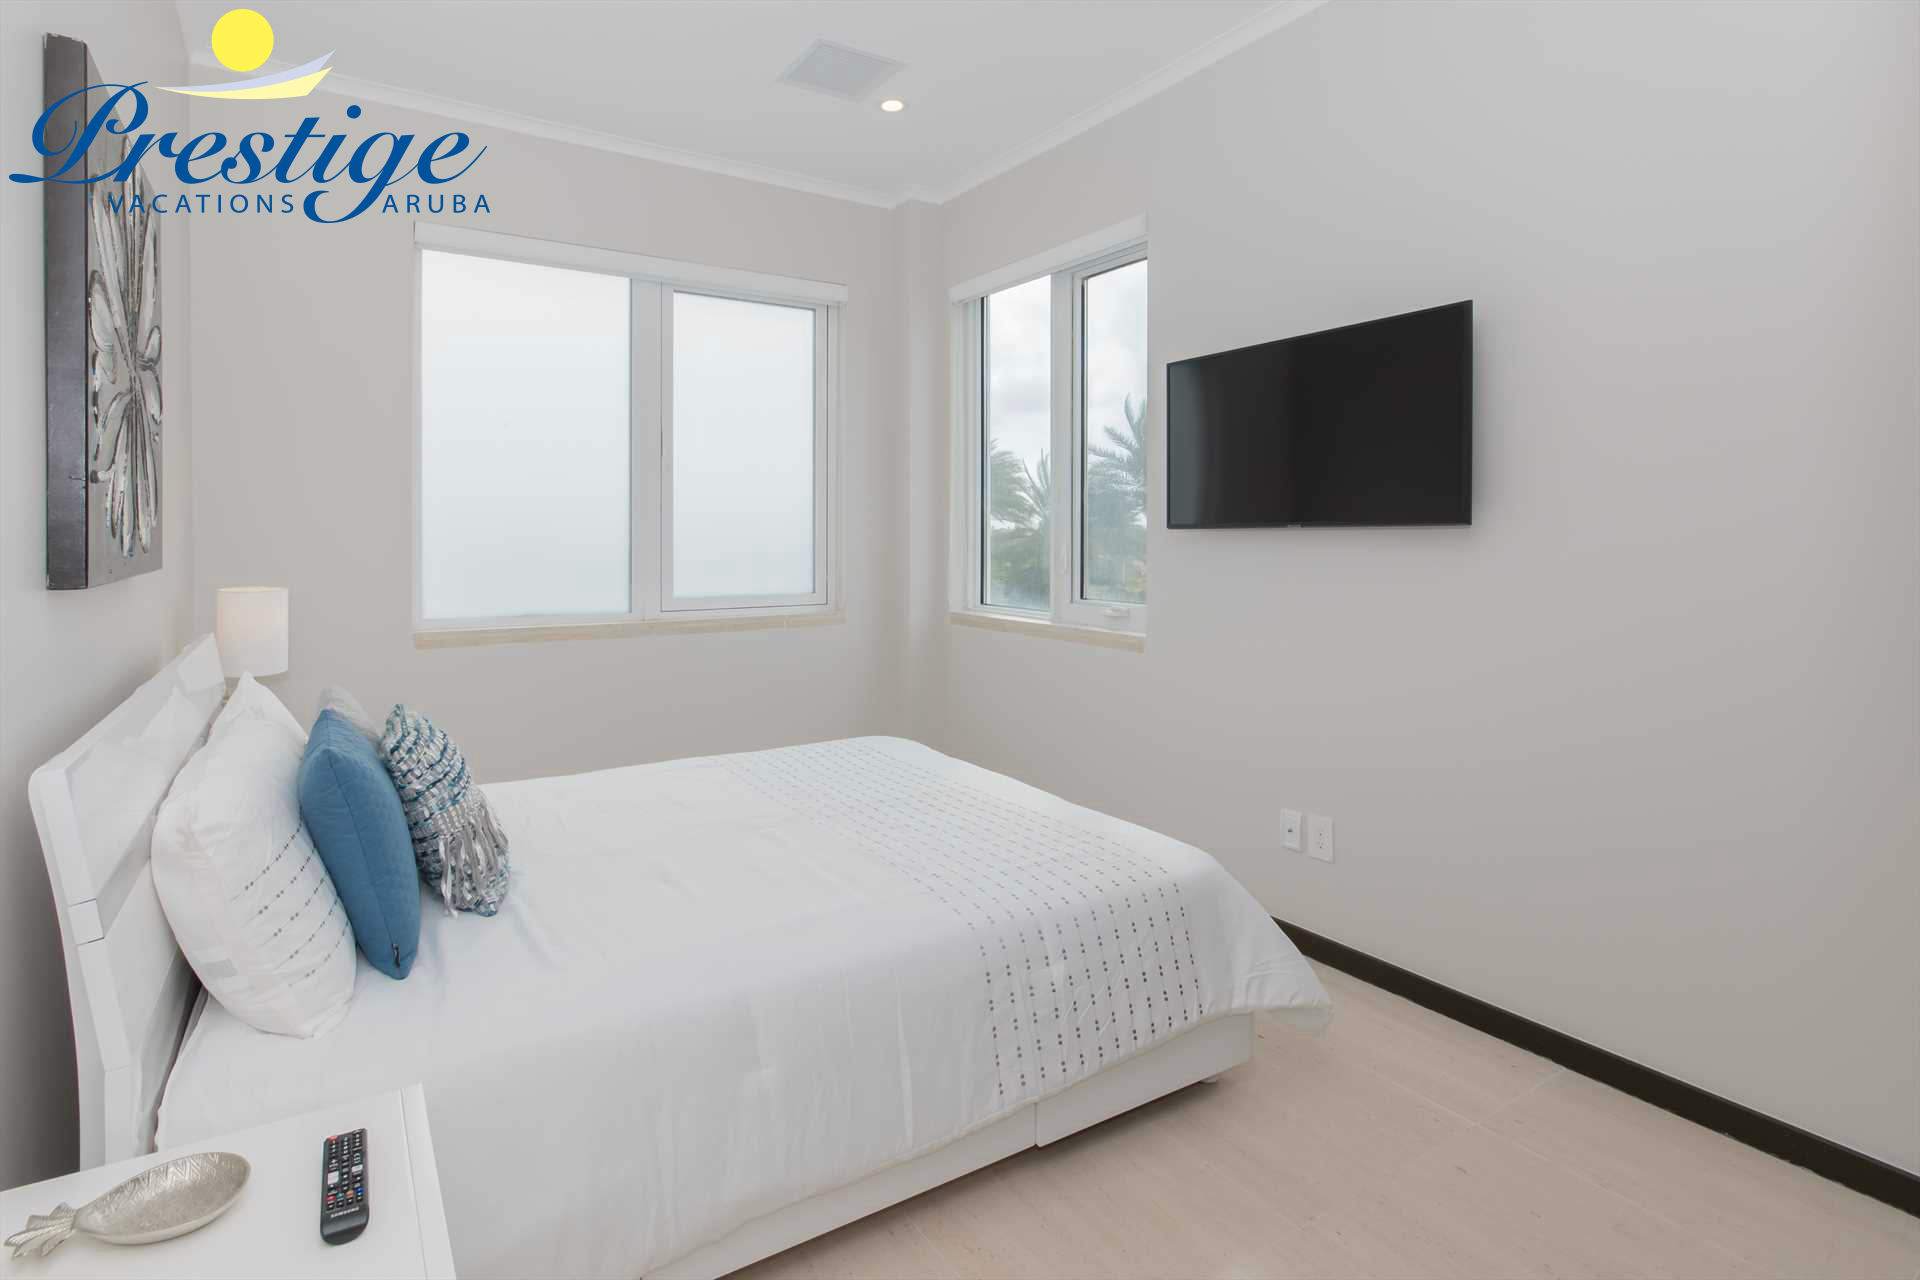 Second bedroom with a queen-size bed and TV